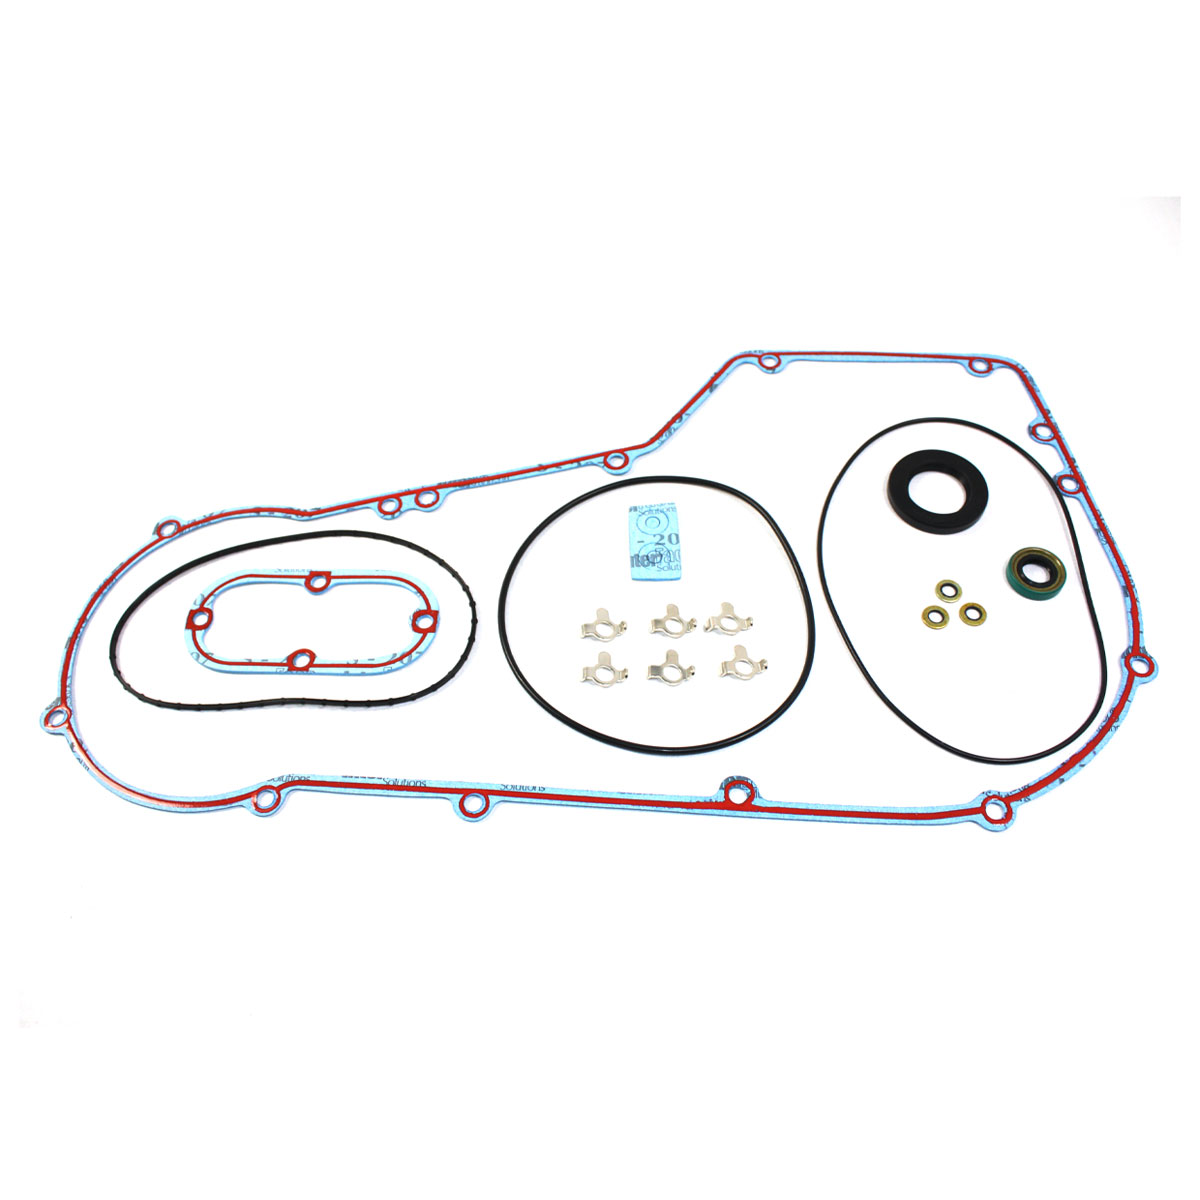 Primary Cover Gasket Kit,for Harley Davidson,by V-Twin Other Motorcycle Engines & Parts